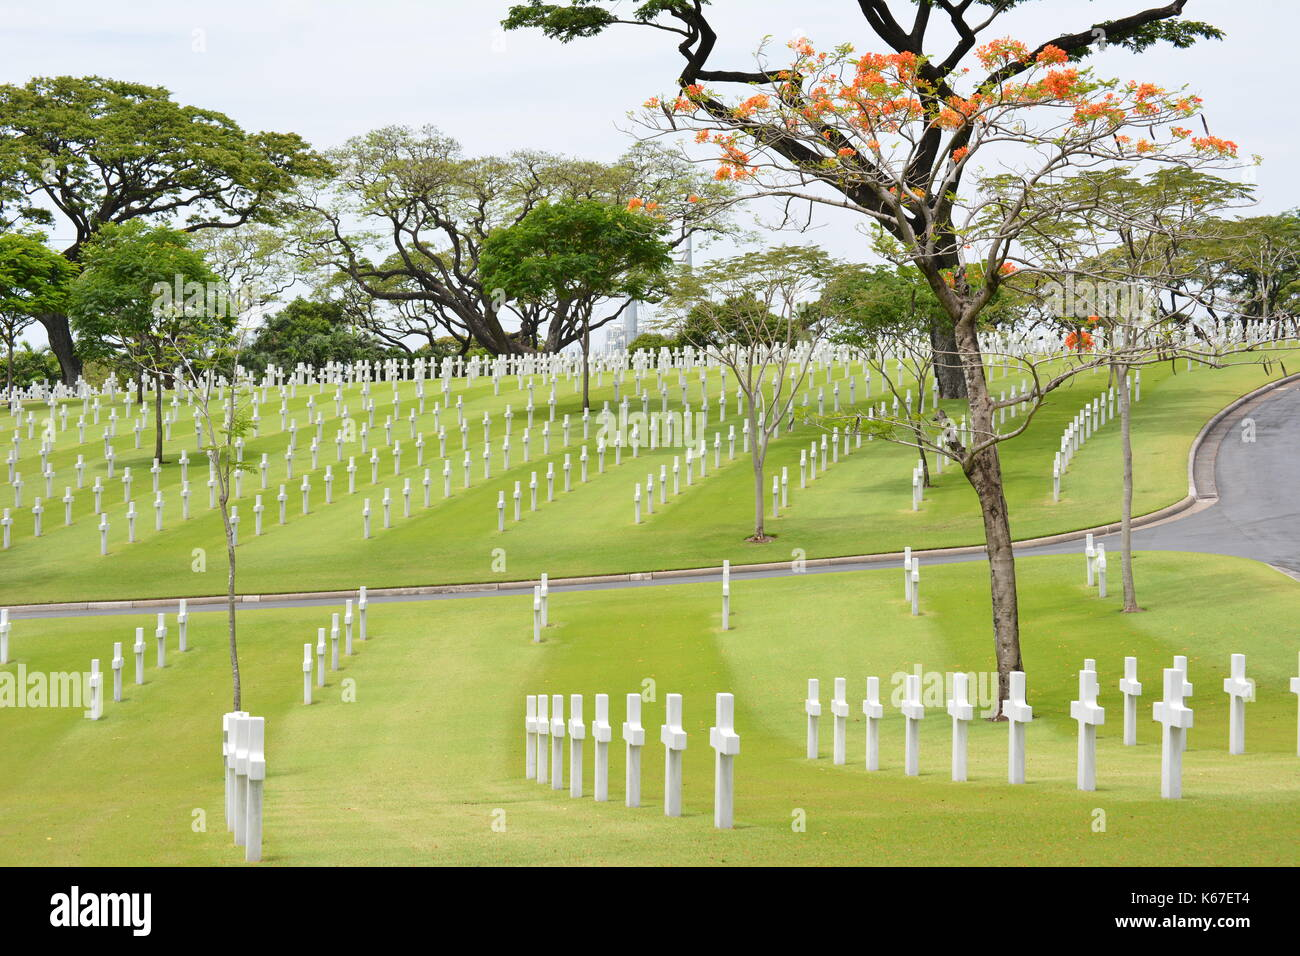 MANILA, PHILIPPINES - APRIL 1, 2016: Manila American Cemetery and Memorial. With 17,206 graves it is the largest Stock Photo